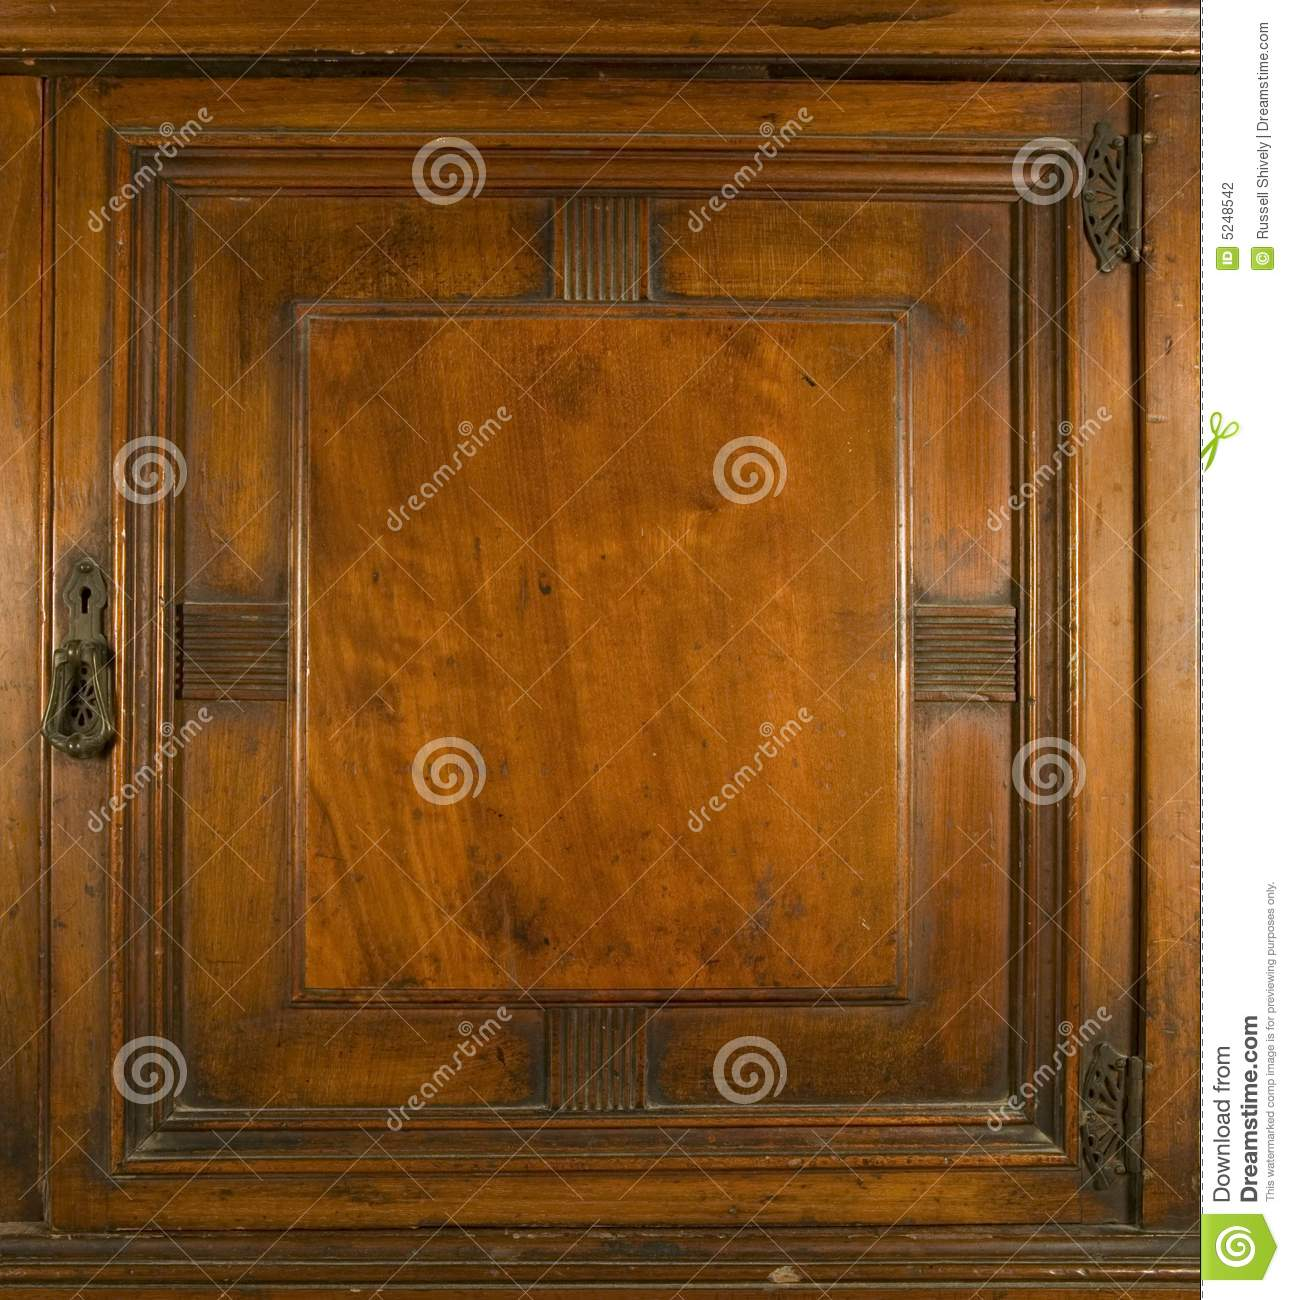 An antique cupboard door with brass keylock and hinges - Antique Cupboard Door With Key Lock Stock Photo - Image: 5248542